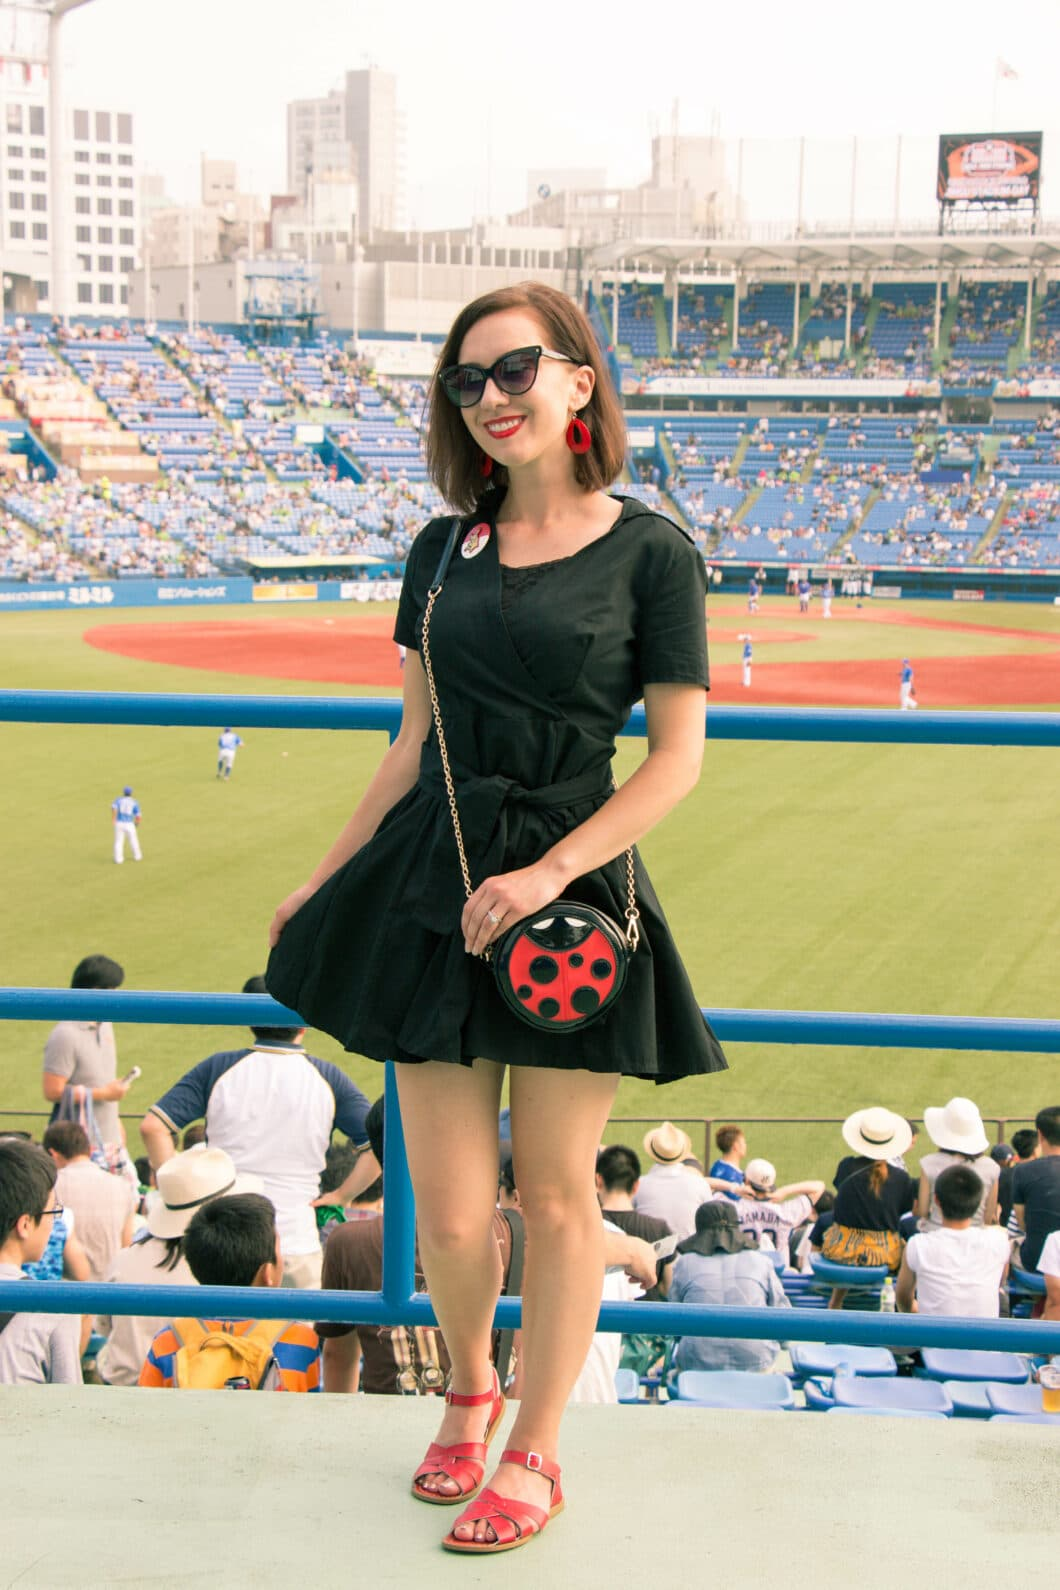 Going to a Japanese Baseball Game (as a Tourist)